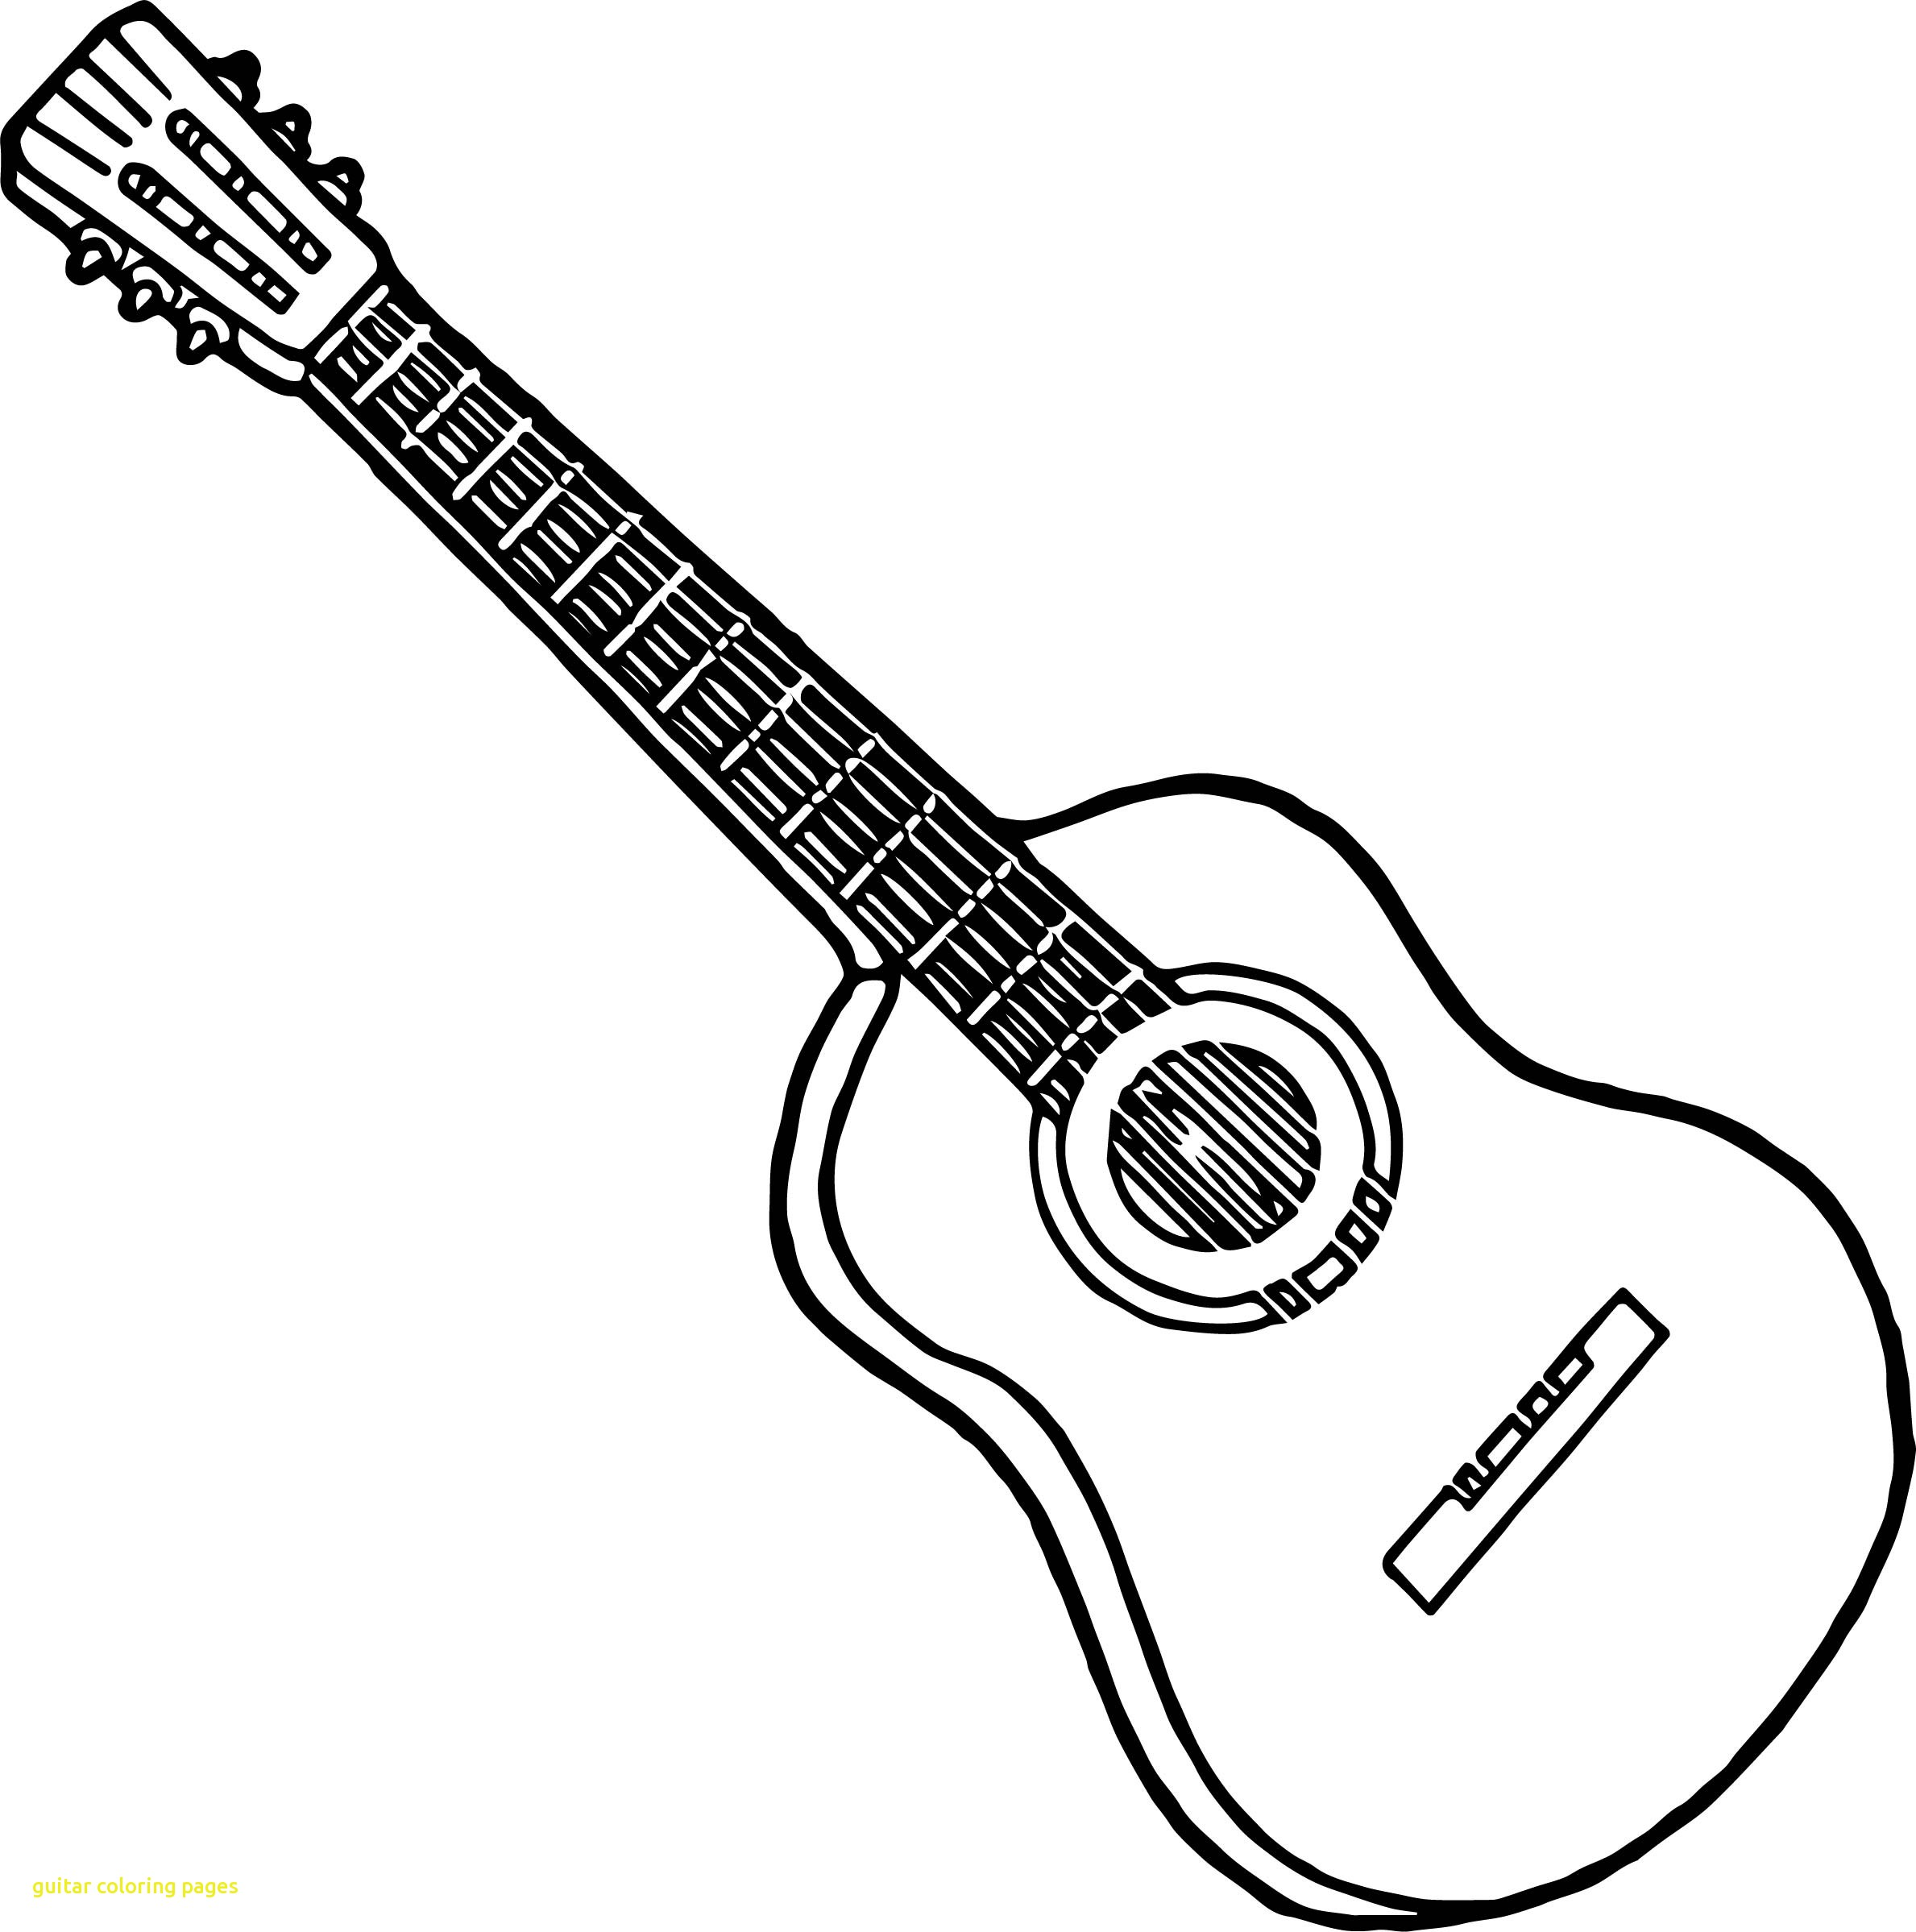 guitar coloring picture guitar coloring pages kidsuki picture guitar coloring